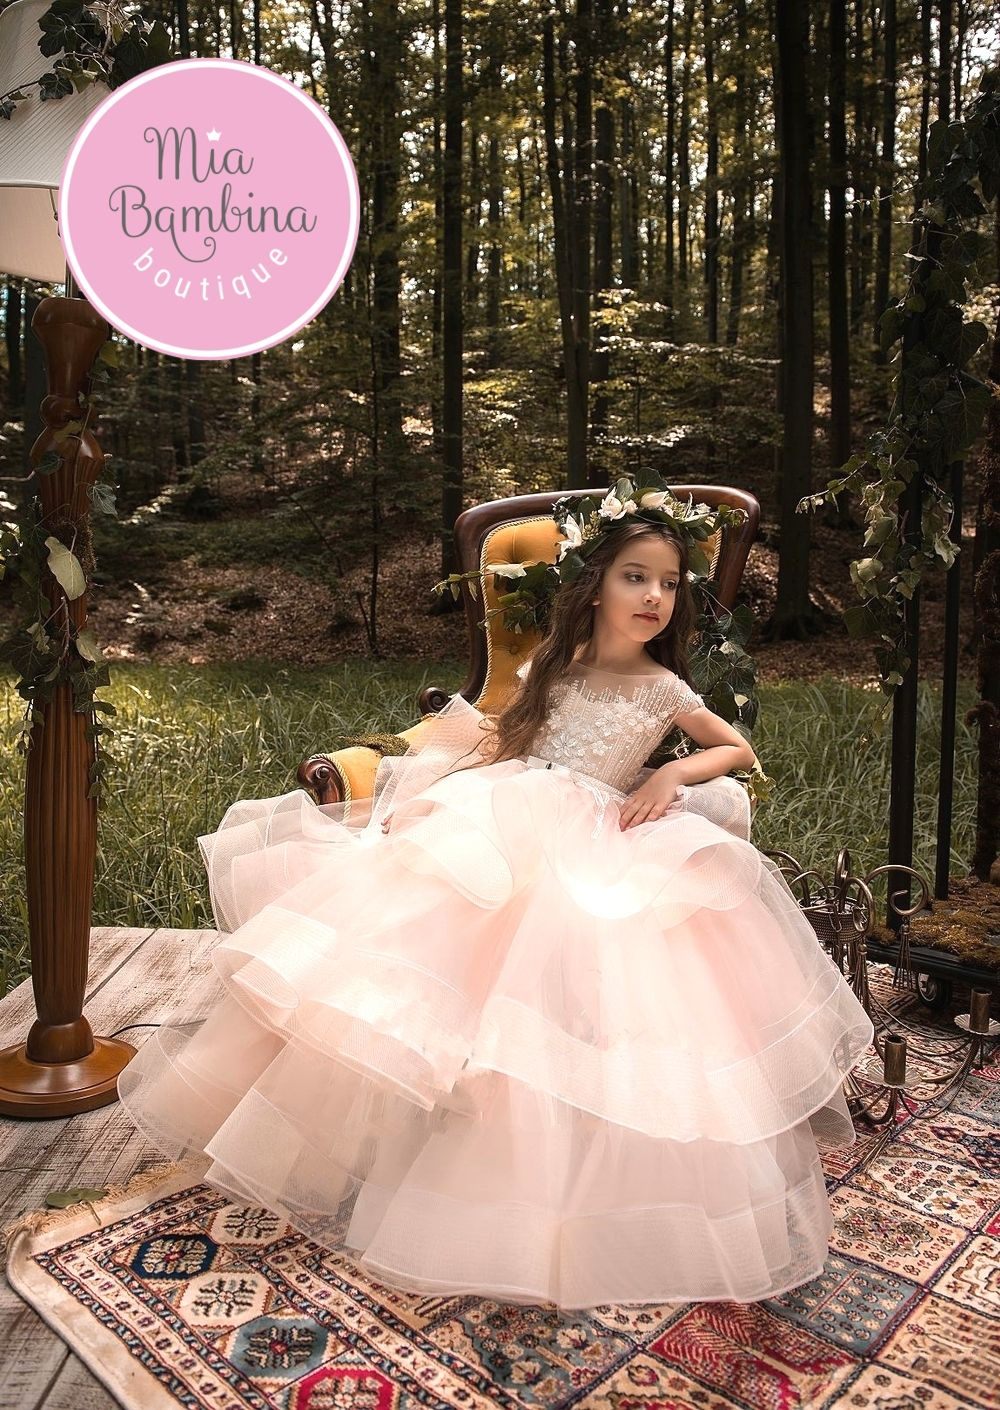 Young girls wedding dresses  Get to Know about the Special Occasion Dresses for Young Girls Mia